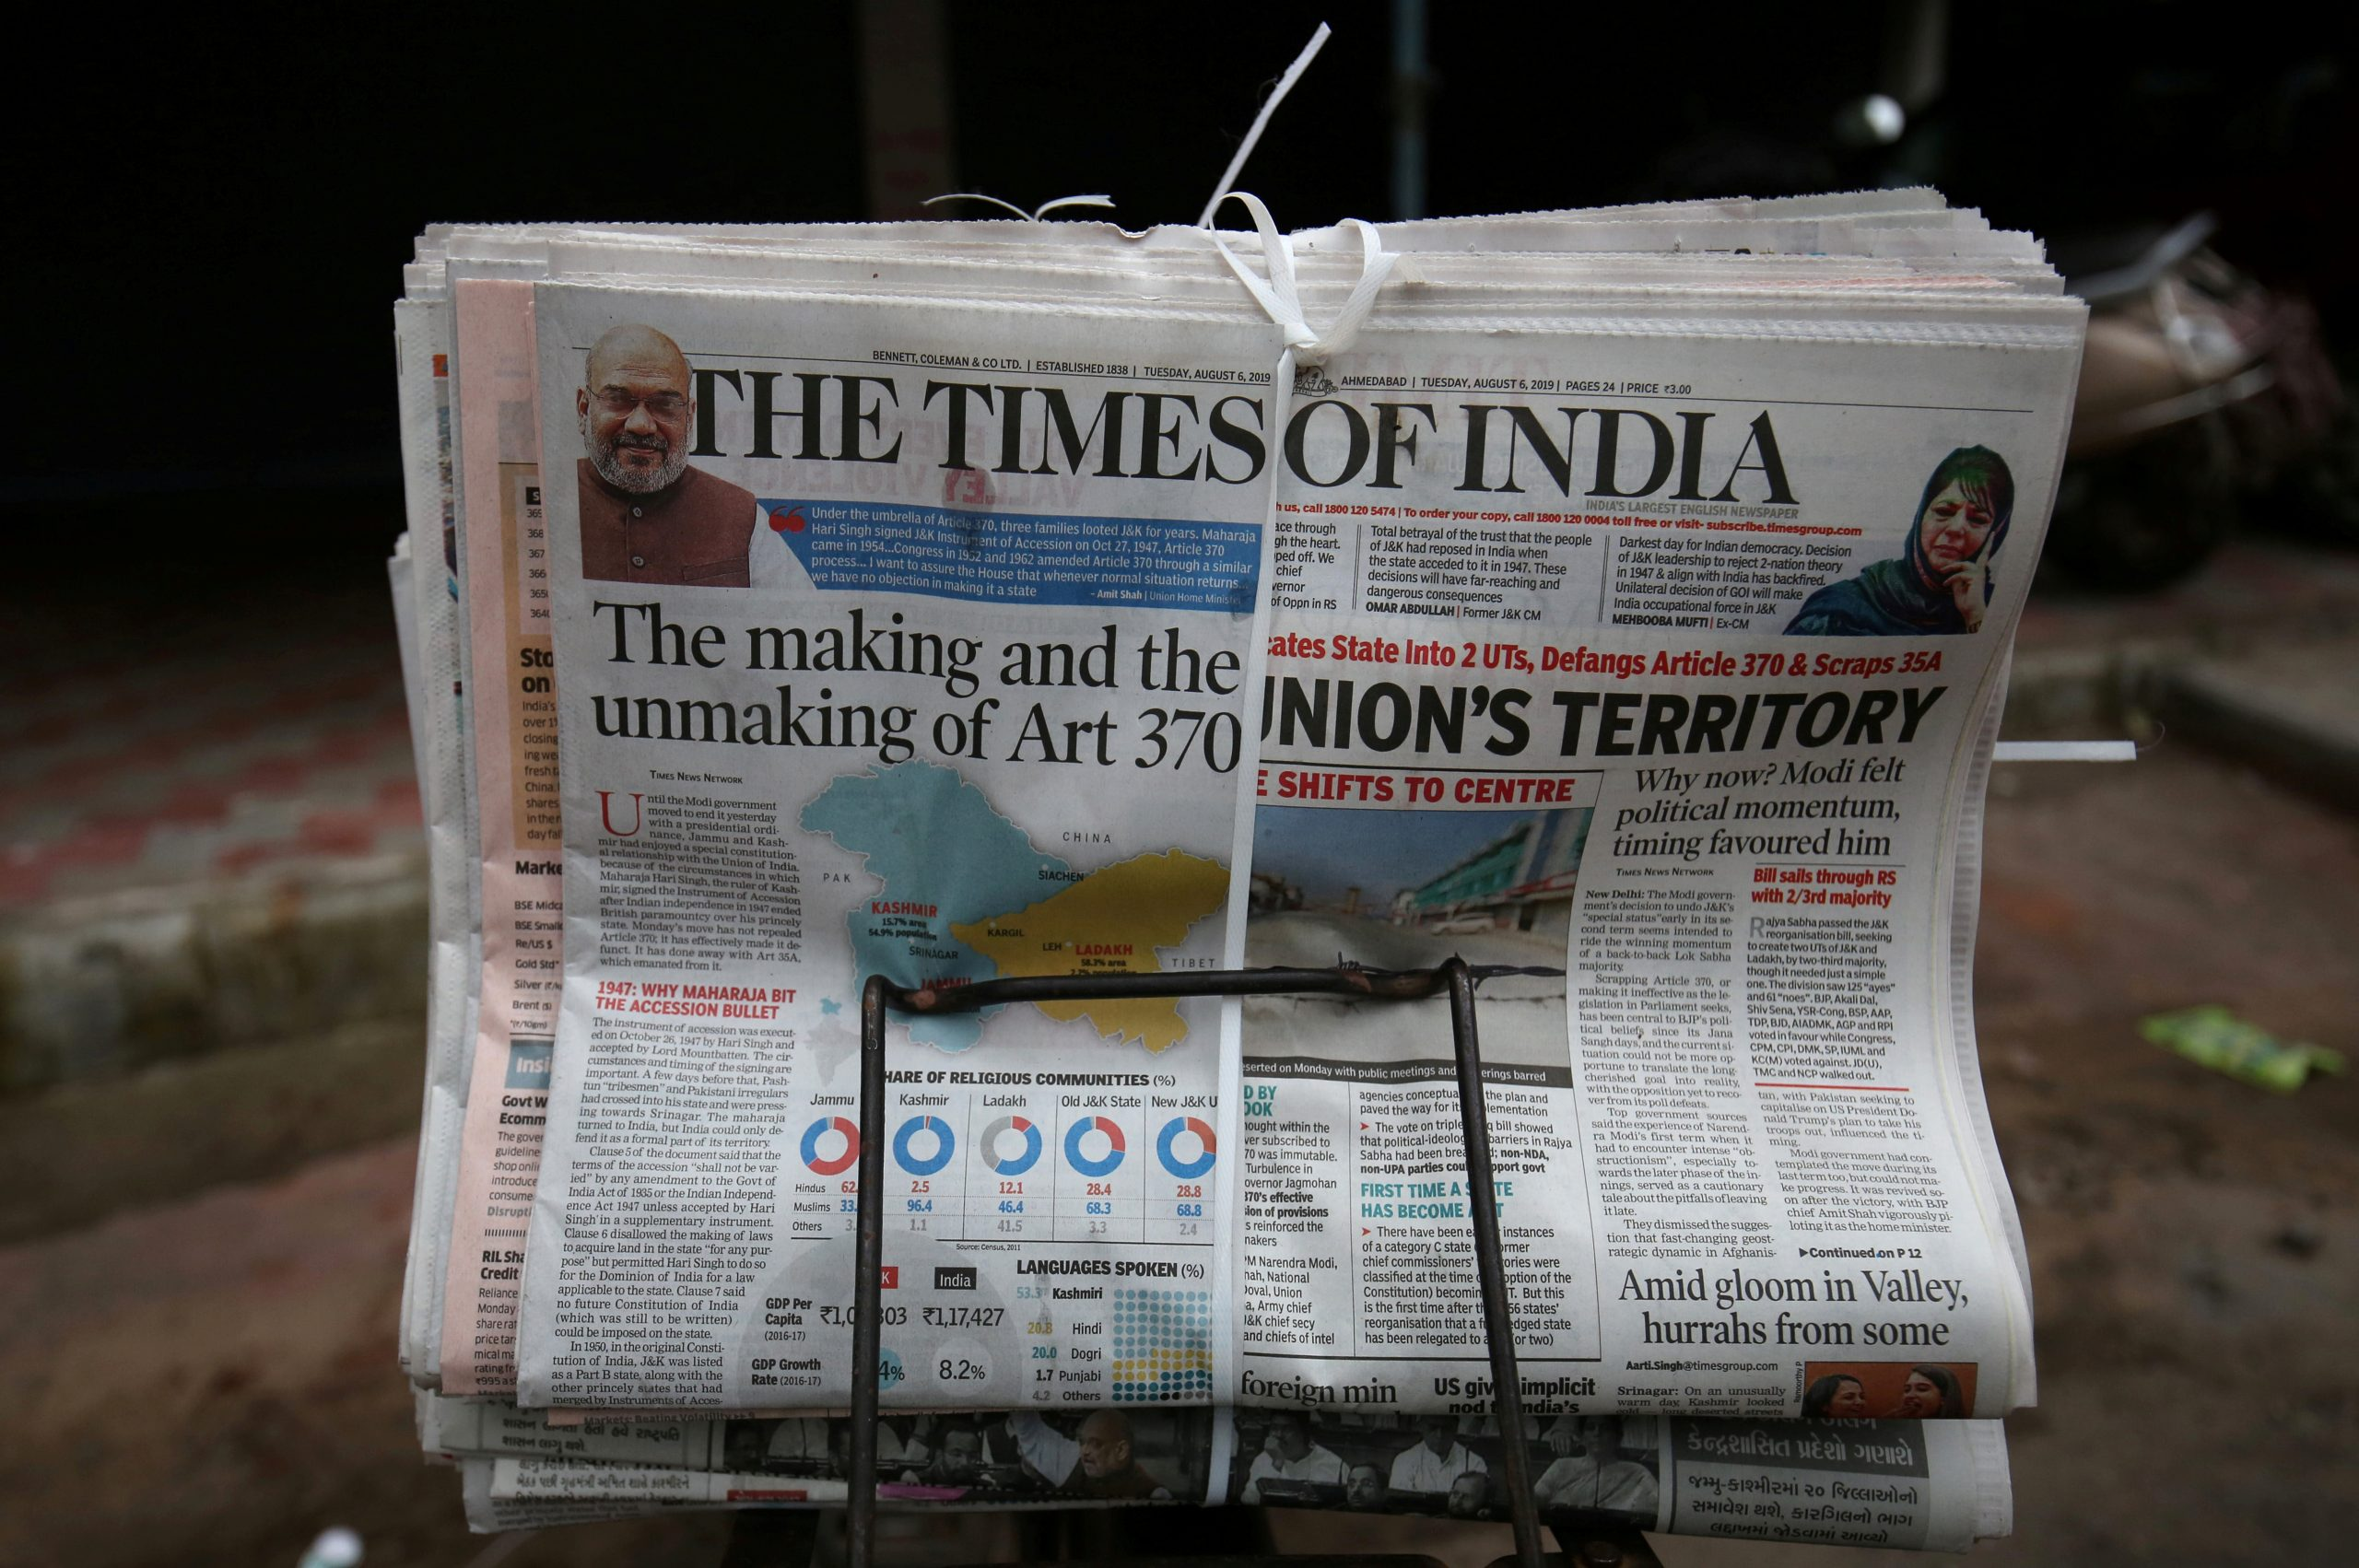 The Times of India has shrunk to around 16 pages with supplements, compared with 40 plus pages. REUTERS/Amit Dave/File Photo